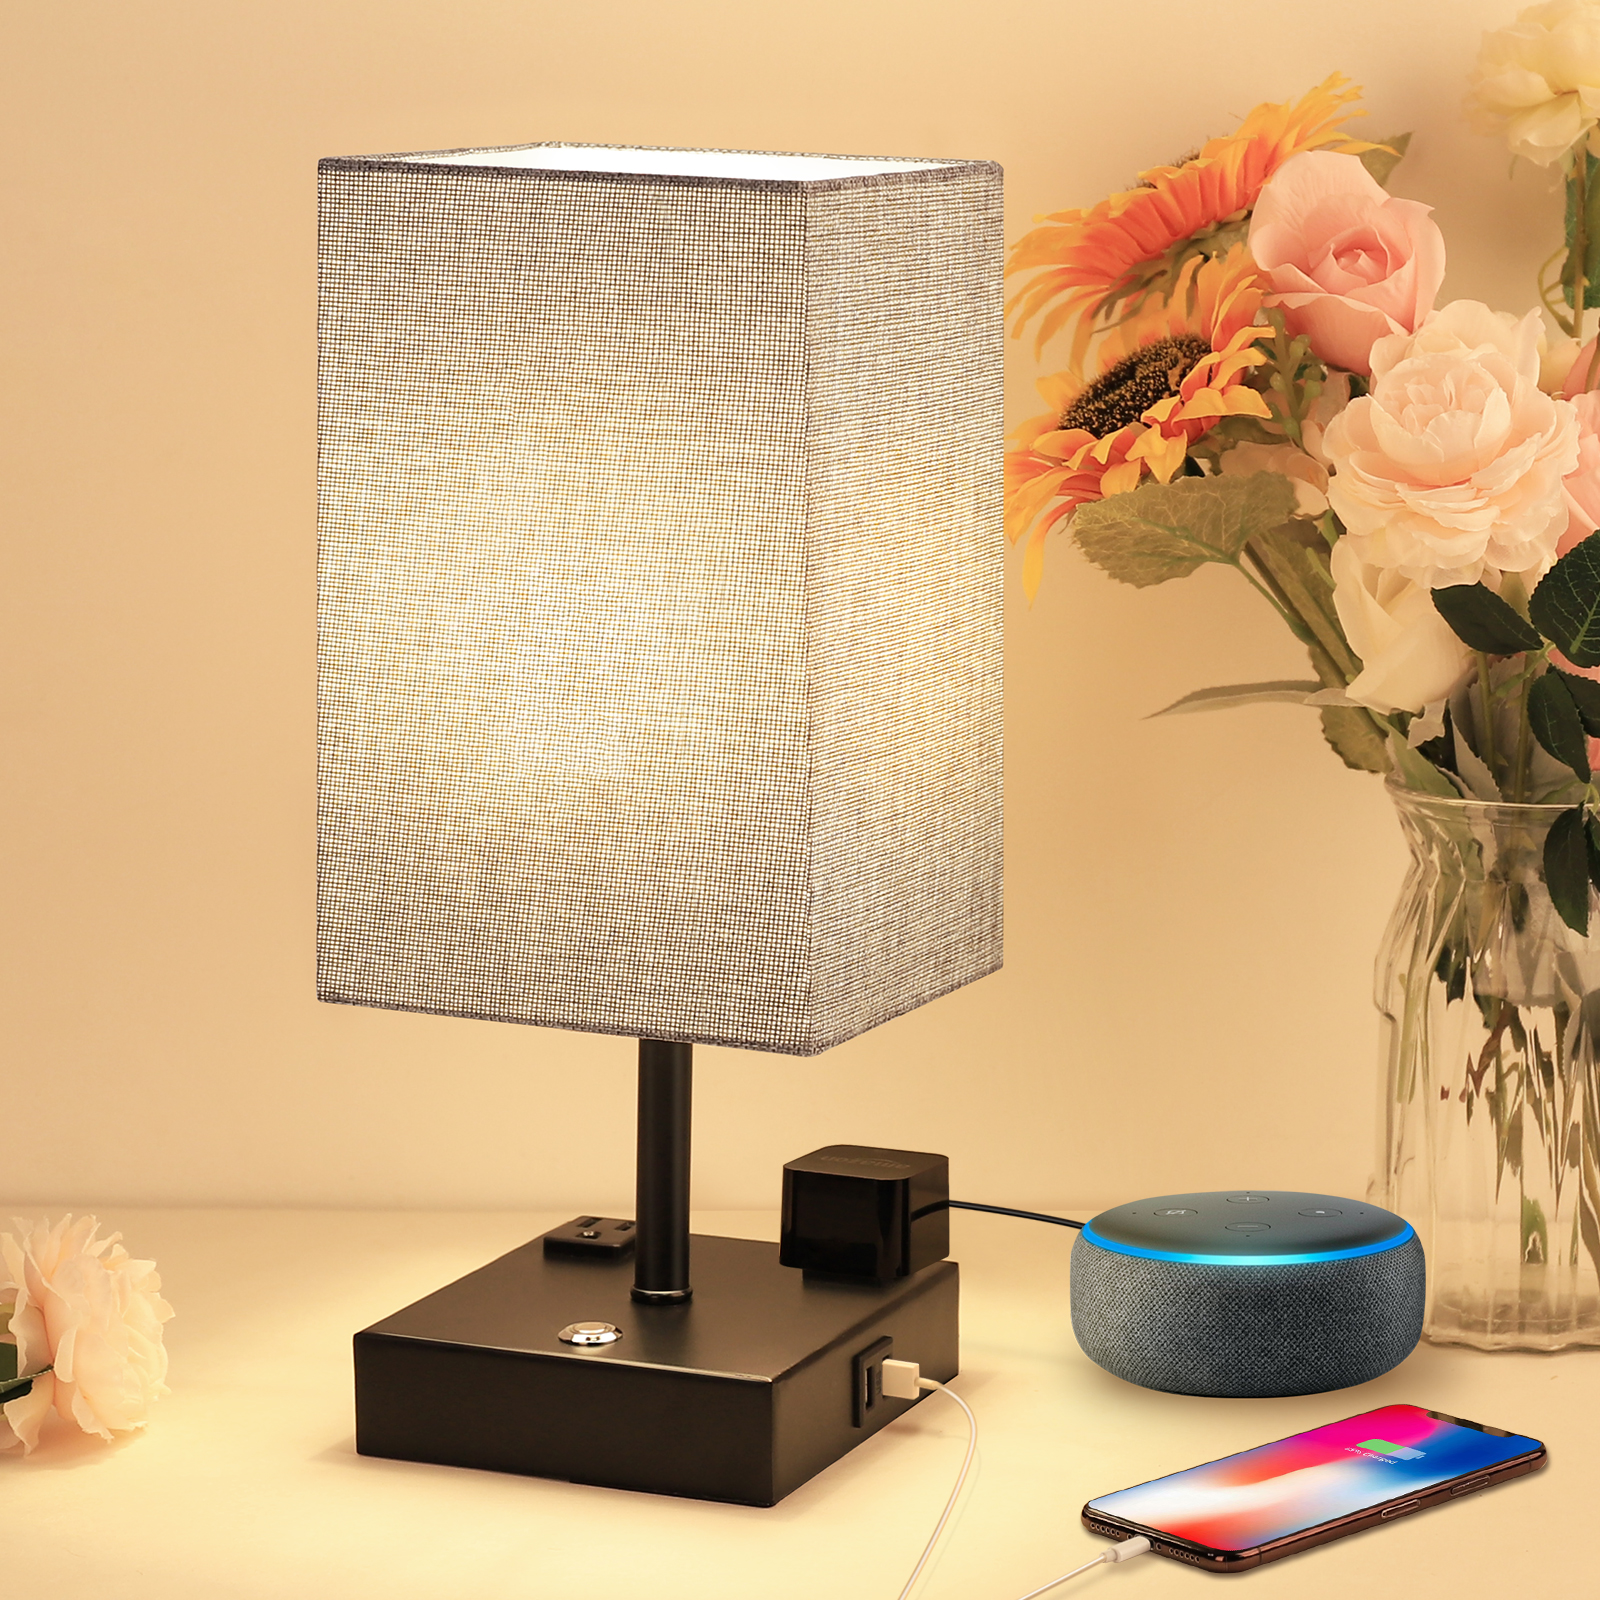 Touch Table Lamp with 2 USB Charging Ports and 2 AC Outlets, 3 Way Dimmable Touch Lamp Bedside Lamp Grey Nightstand Lamps Square Lampshade Bedroom Lamp for Metal Base Perfect for Bedroom Living Room